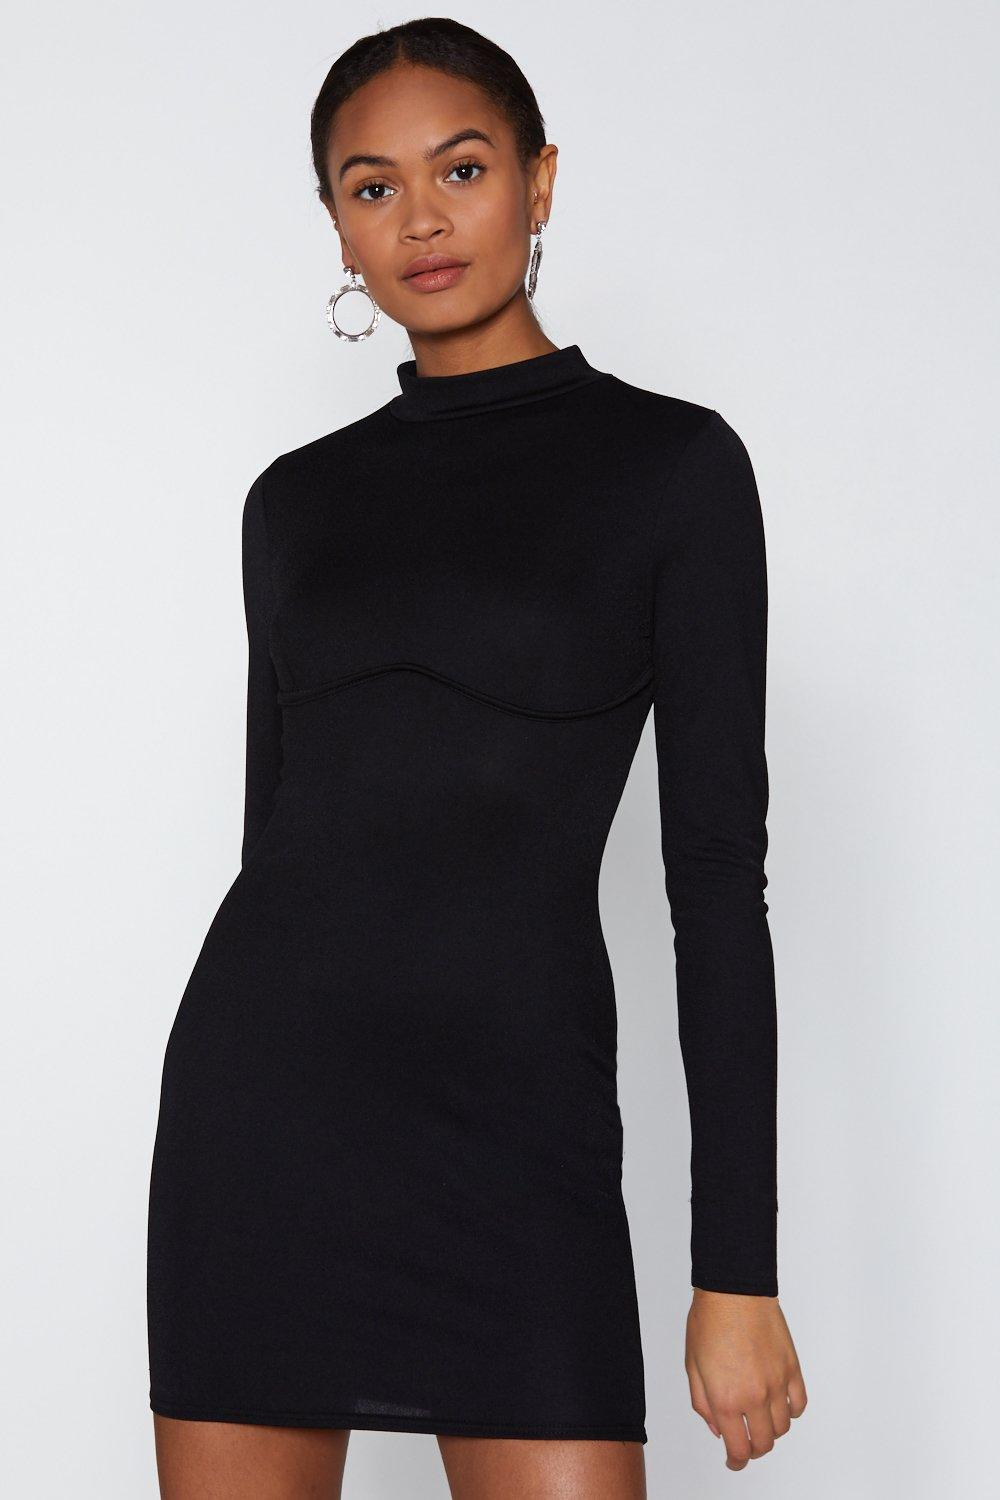 141f77b42 Womens Black Back Me C-up High Neck Dress. Hover to zoom